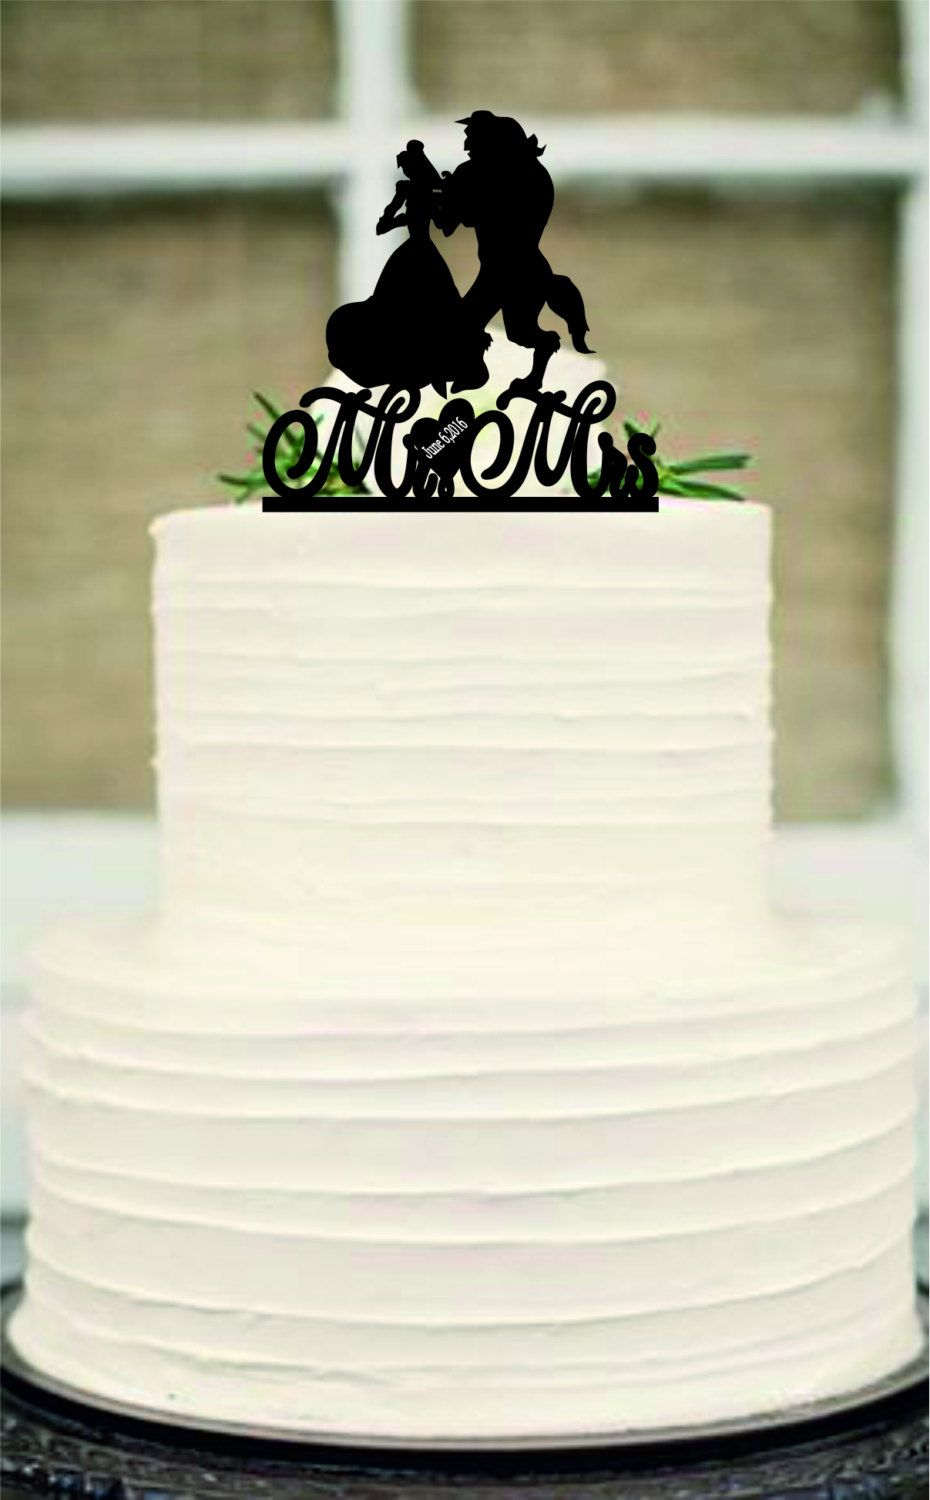 silhouette wedding cake topper, Unique wedding cake topper with ...